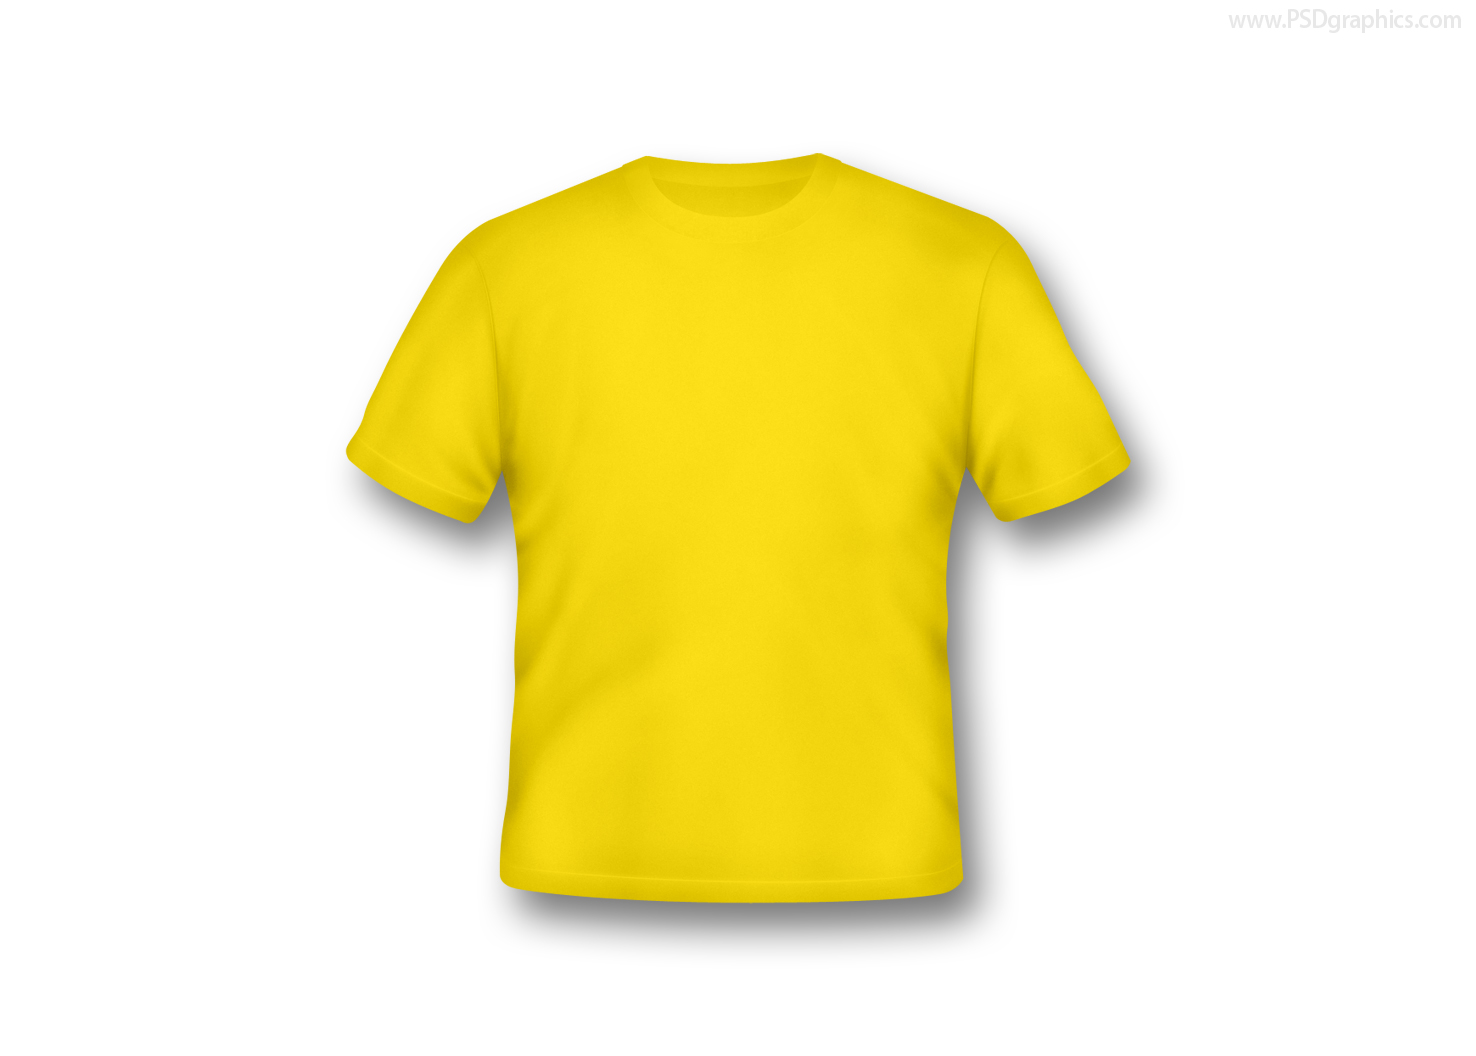 blank t shirts in various colors psdgraphics